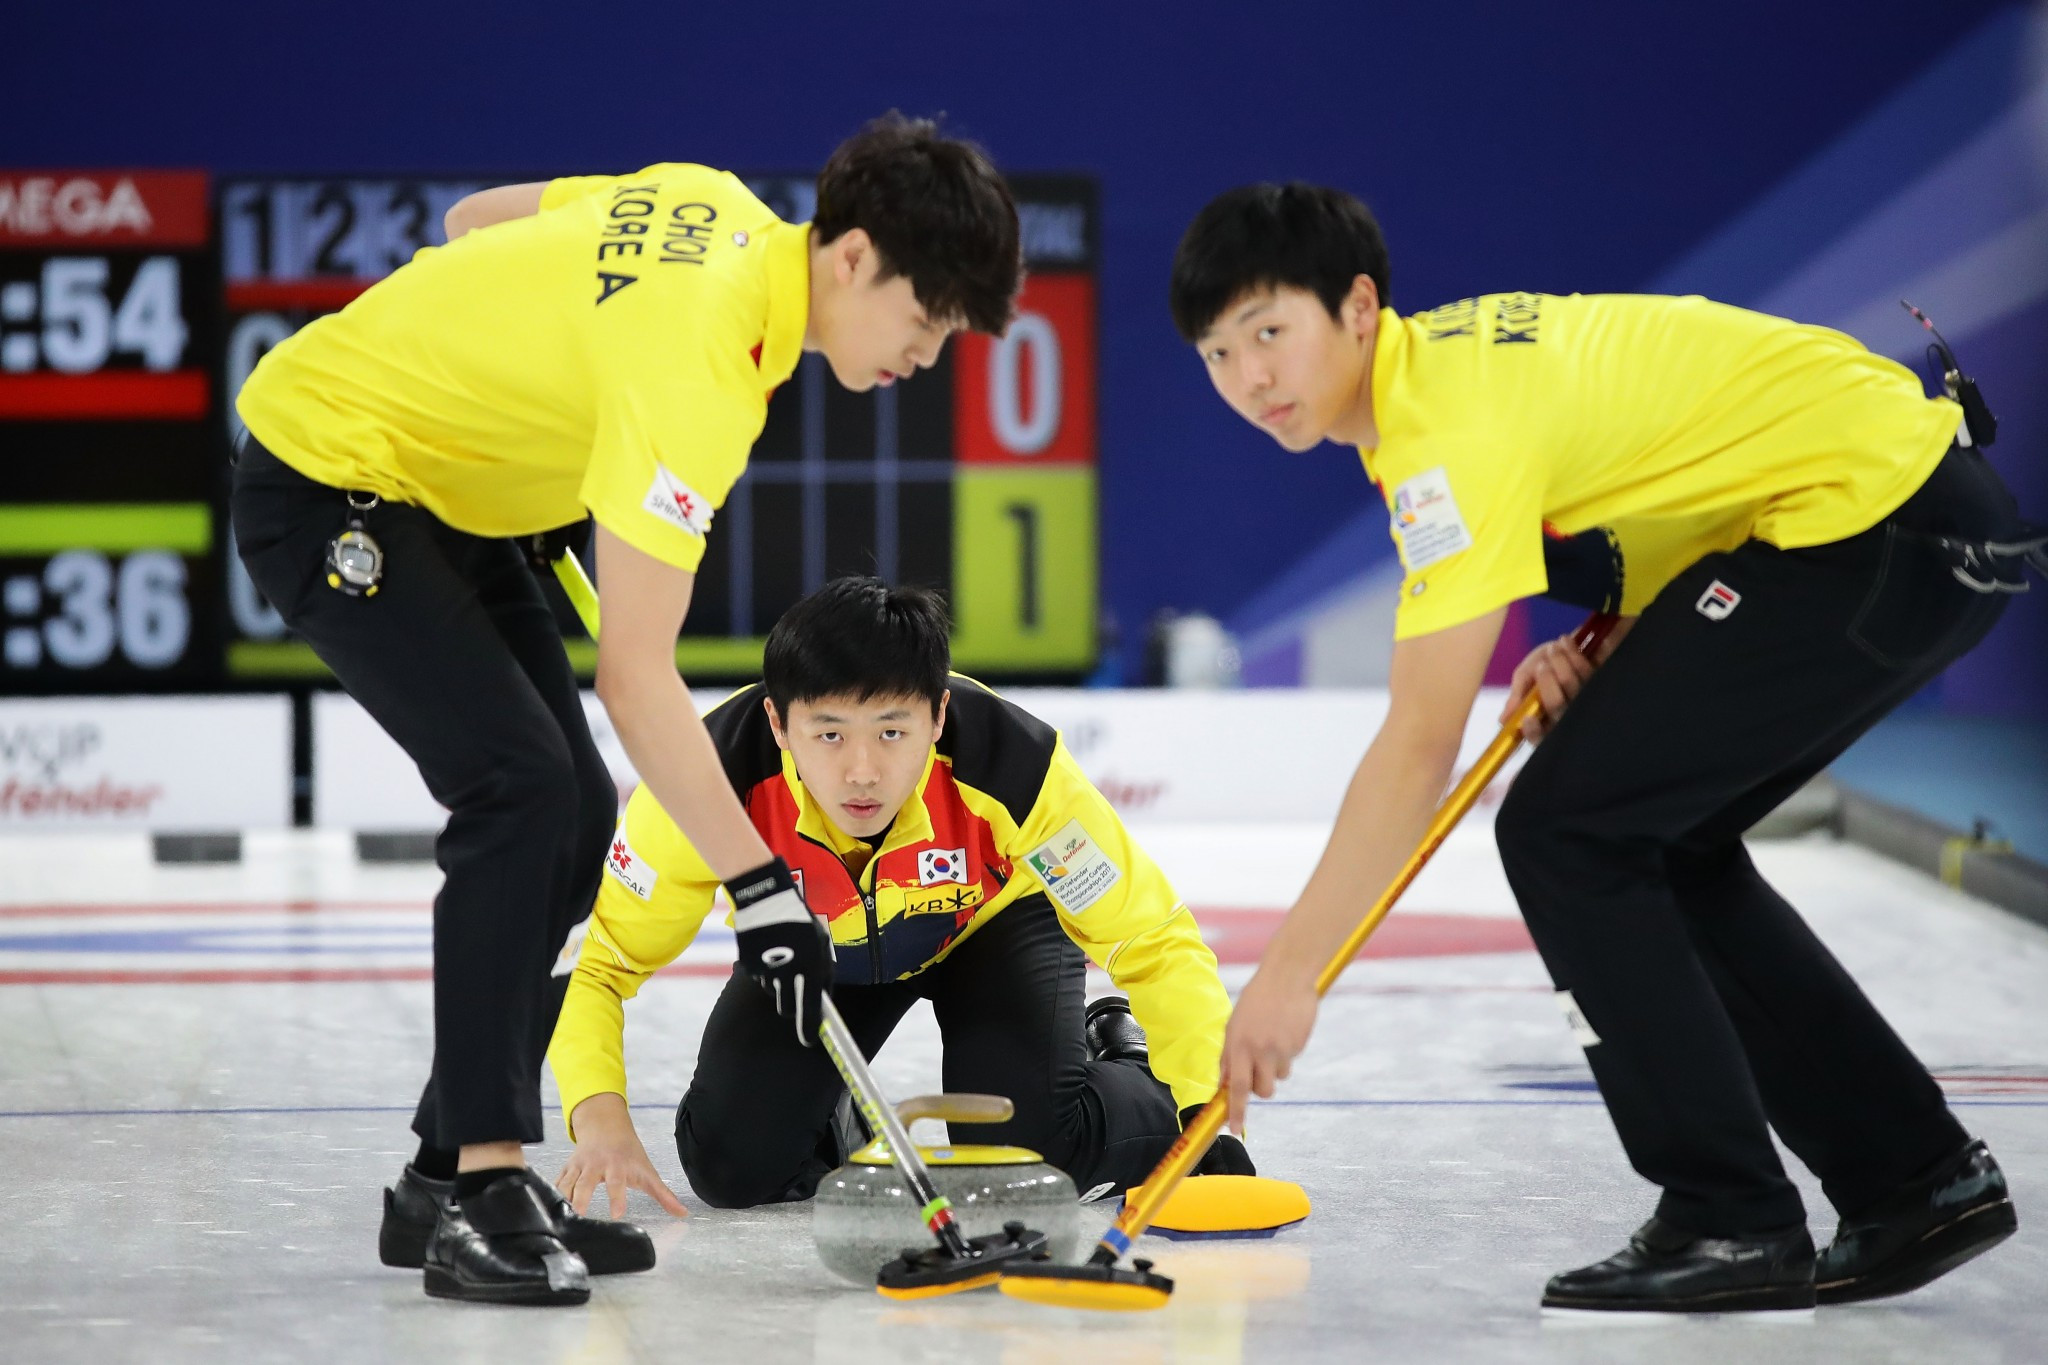 South Korean Sports Ministry to audit curling federation amid governance issues